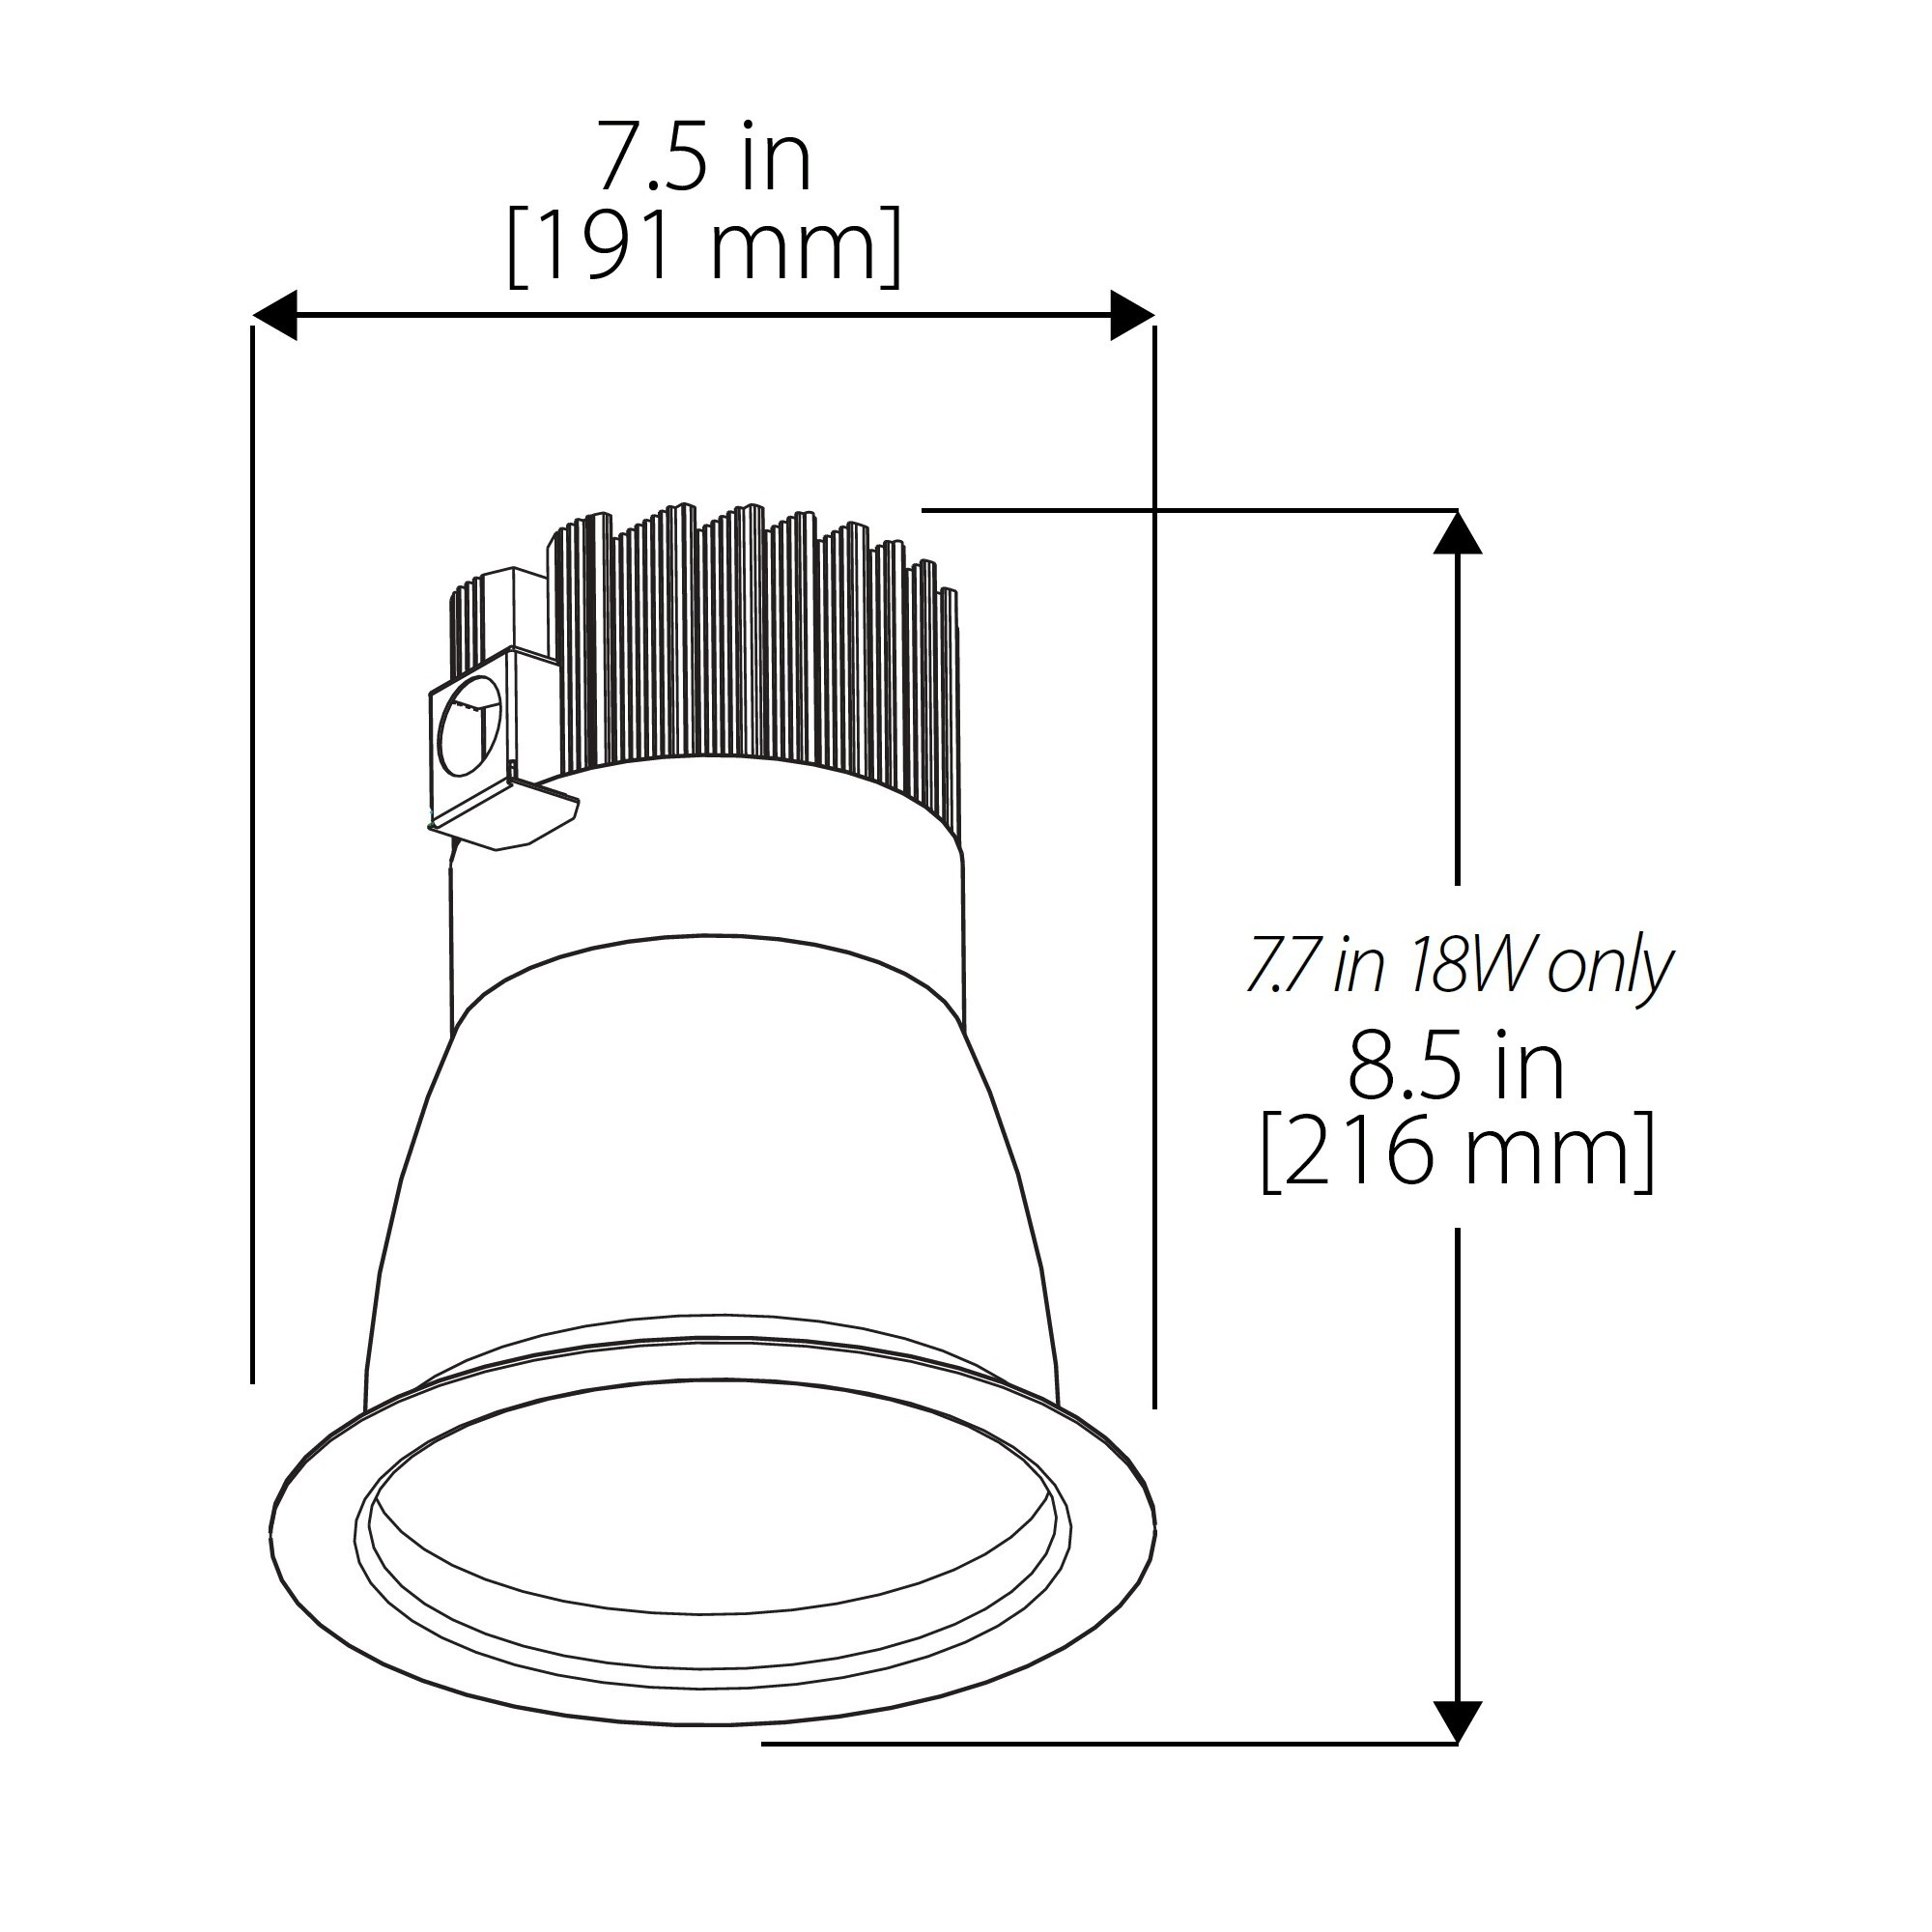 Nicor Cdr6 18w 40k Sn 4 Inch Commercial Led Downlight 14 Wat